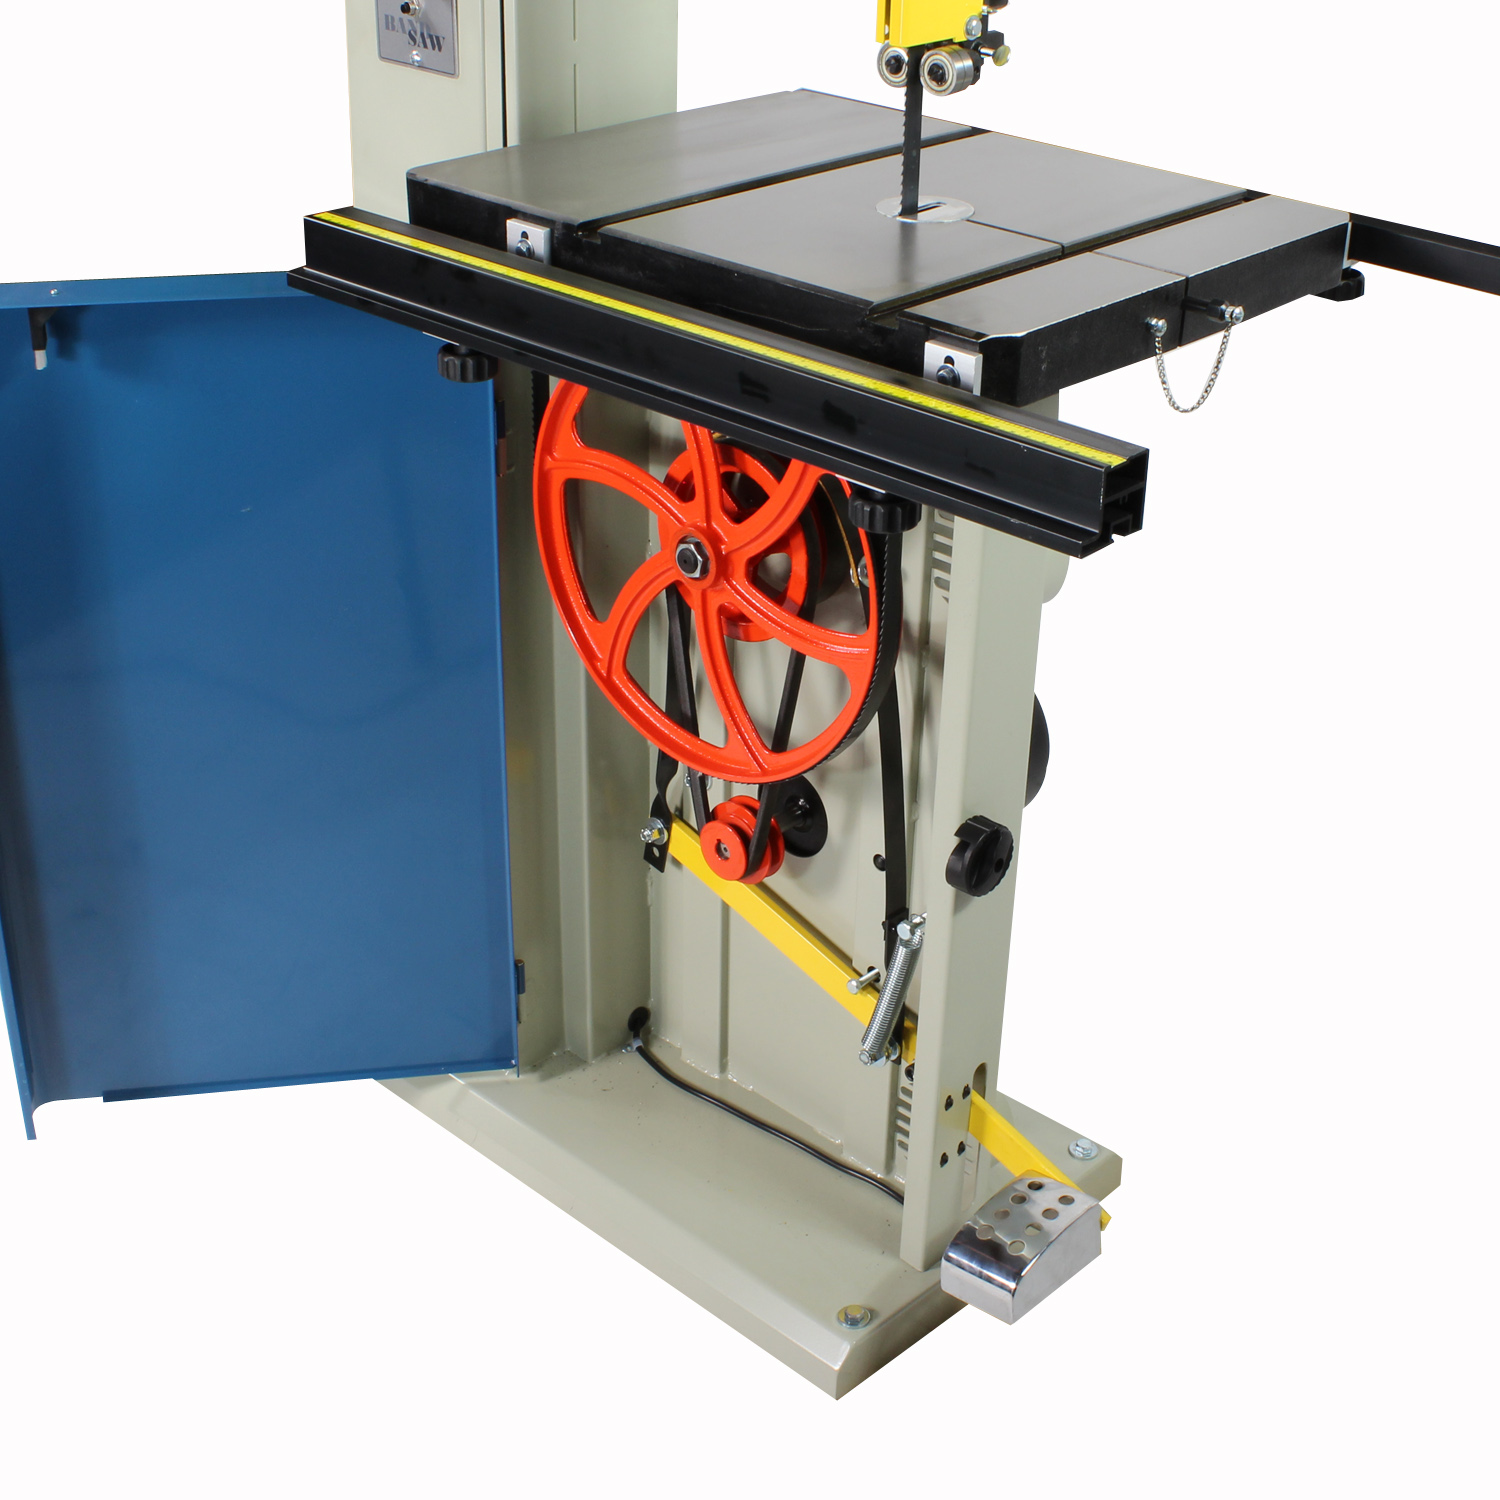 Woodworking Vertical Bandsaw Wbs 14 Baileigh Industrial